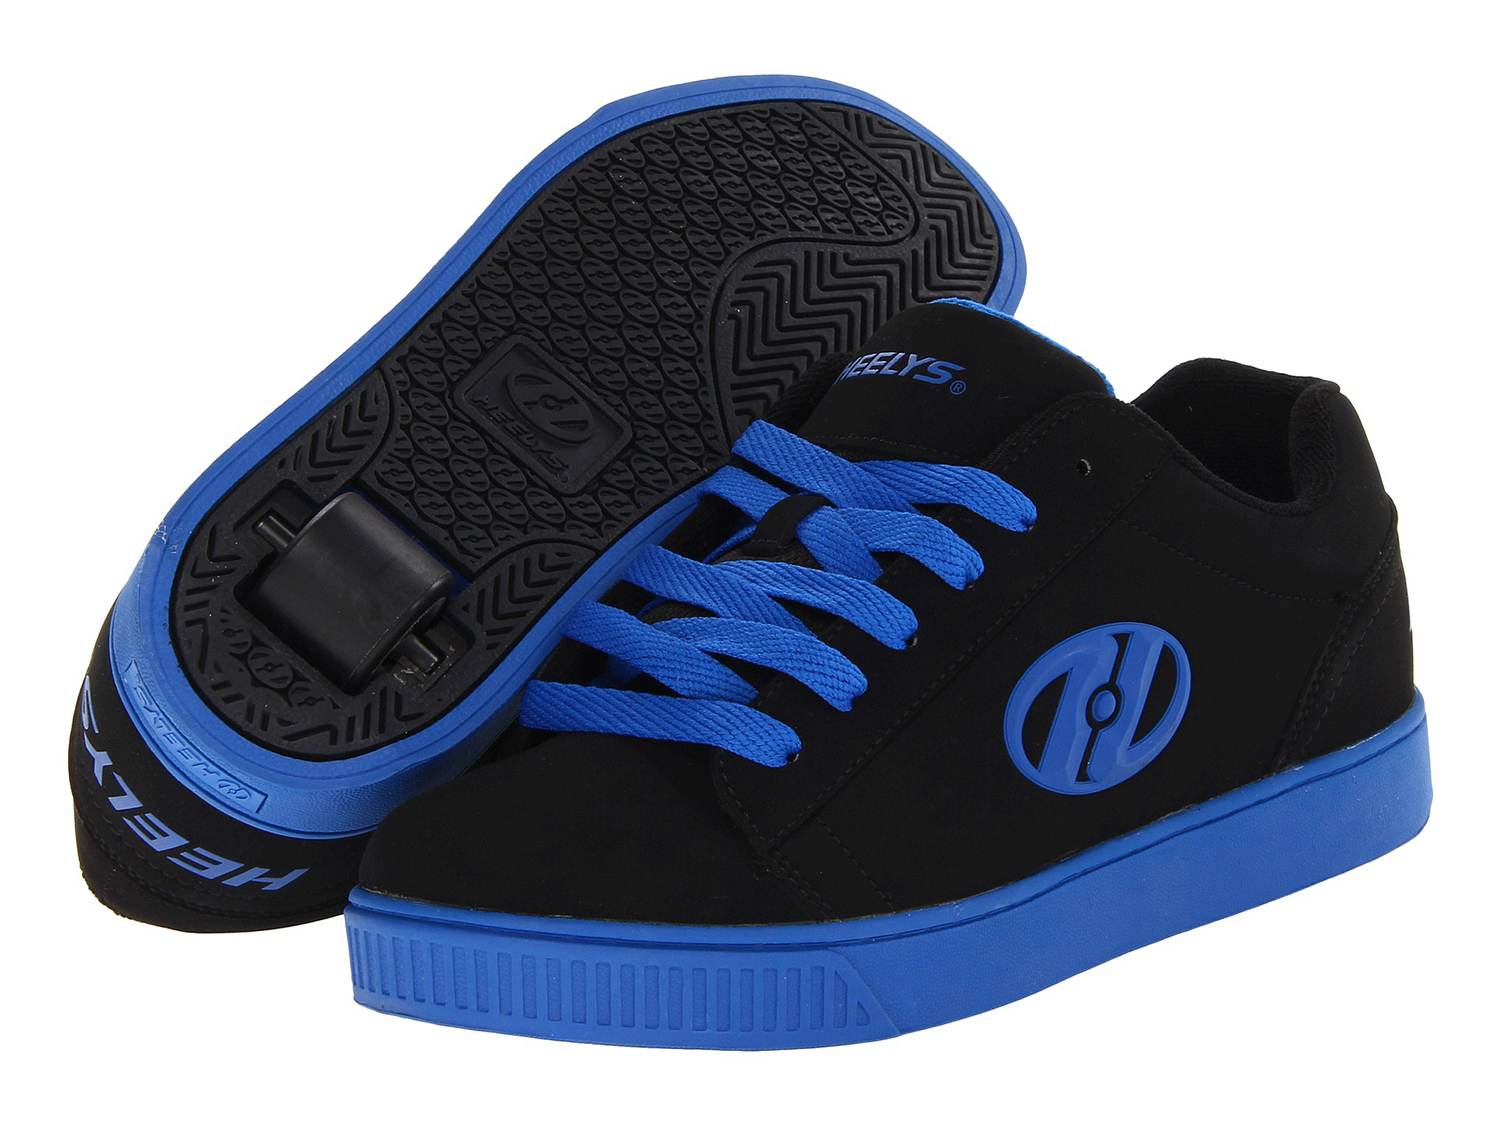 Heelys Mens Roller Shoes